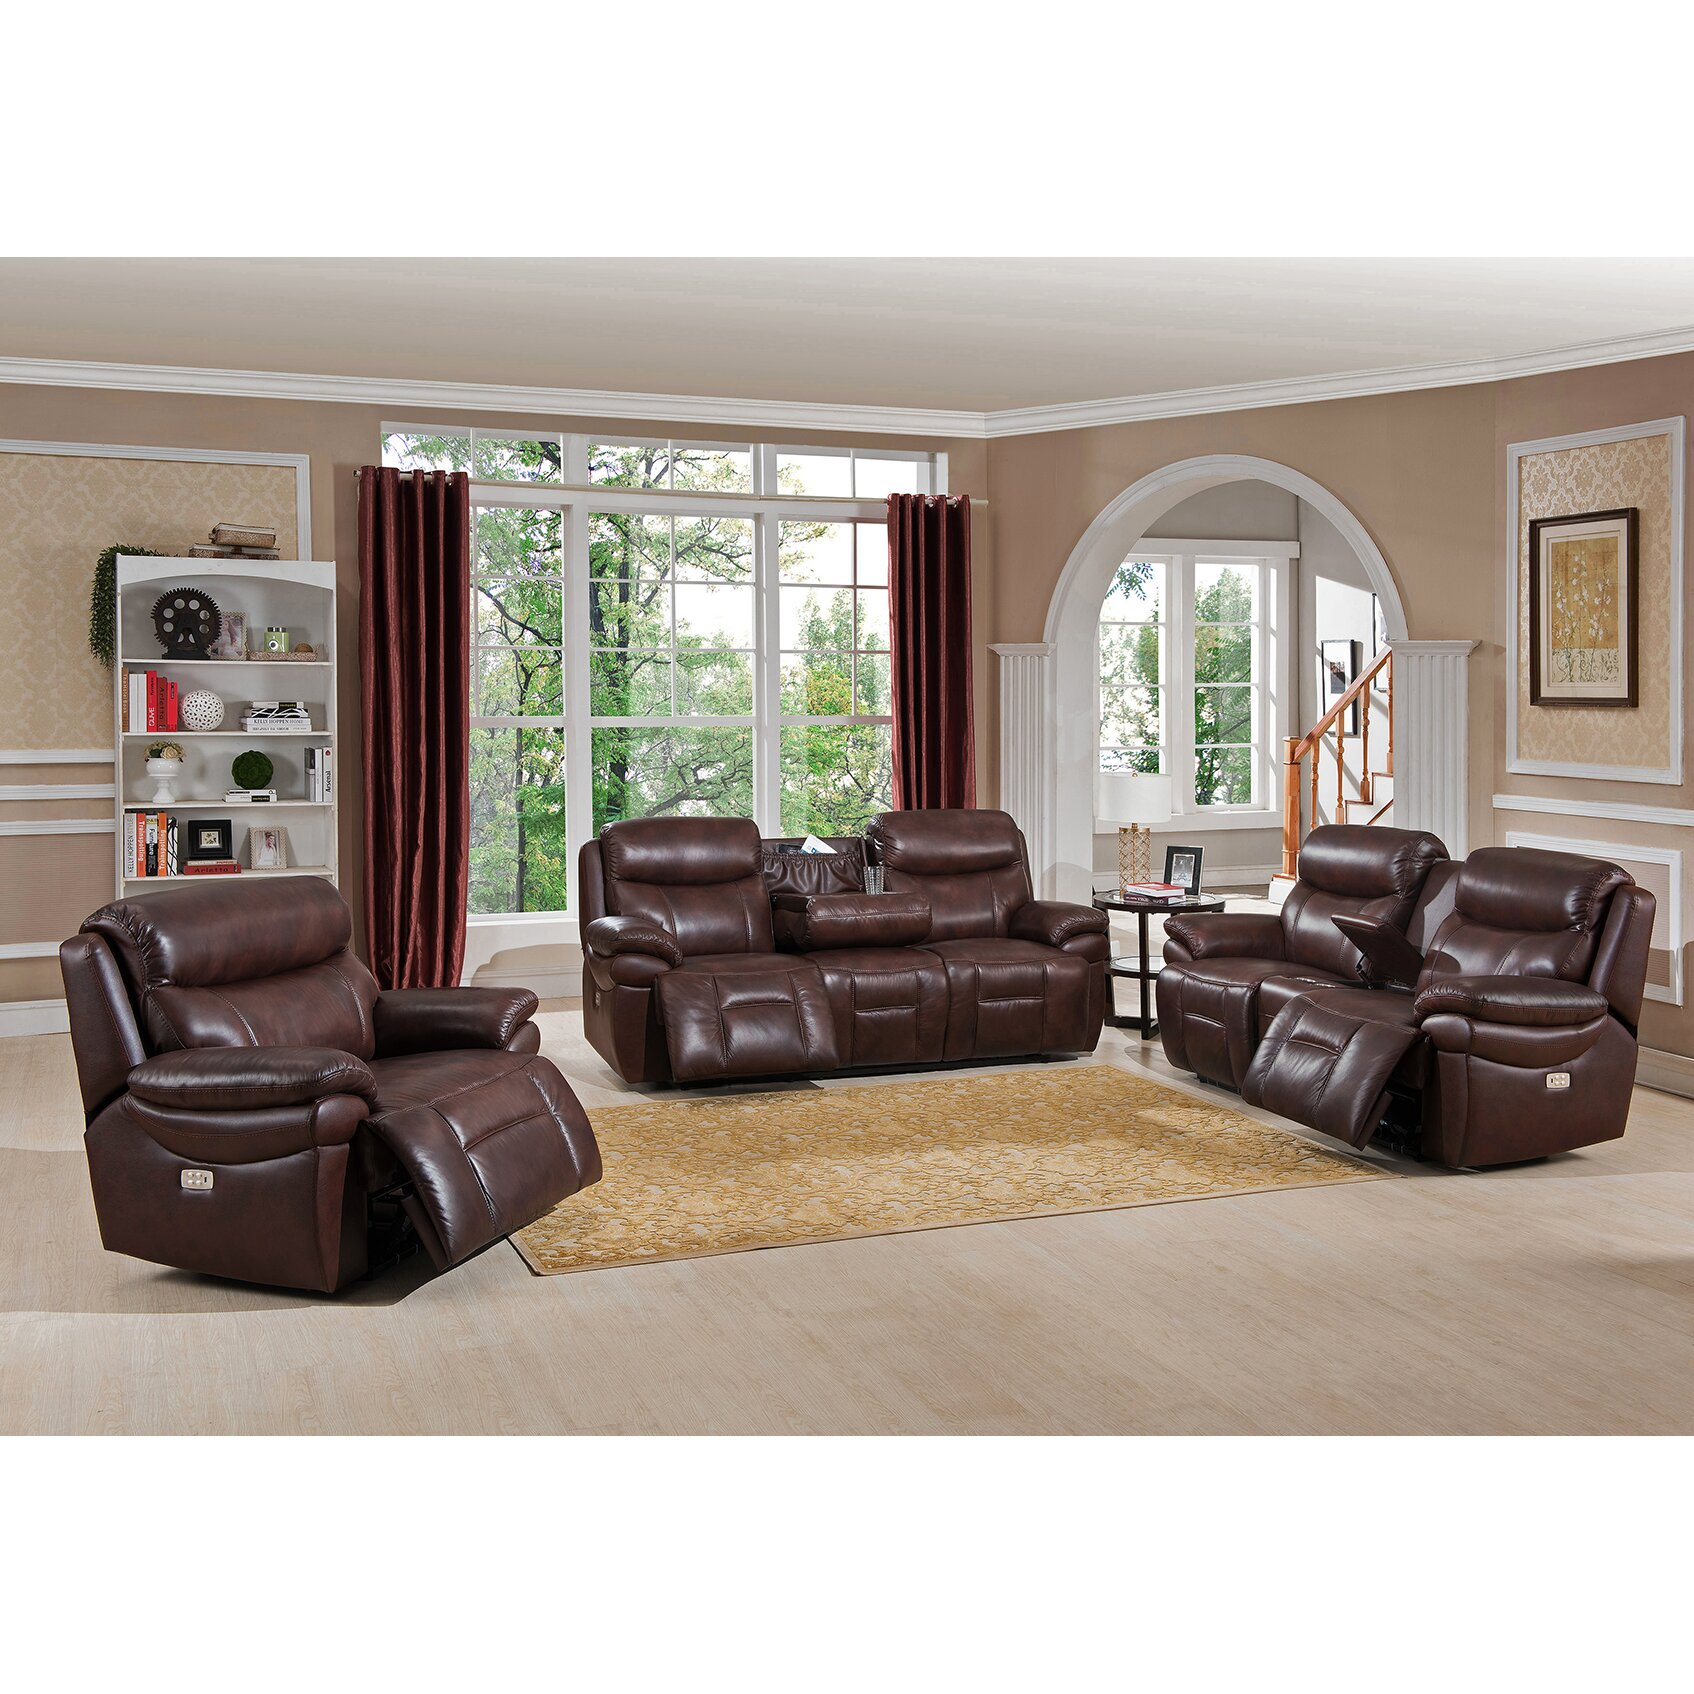 Amax sanford 3 piece leather power reclining living room for Wg r living room sets